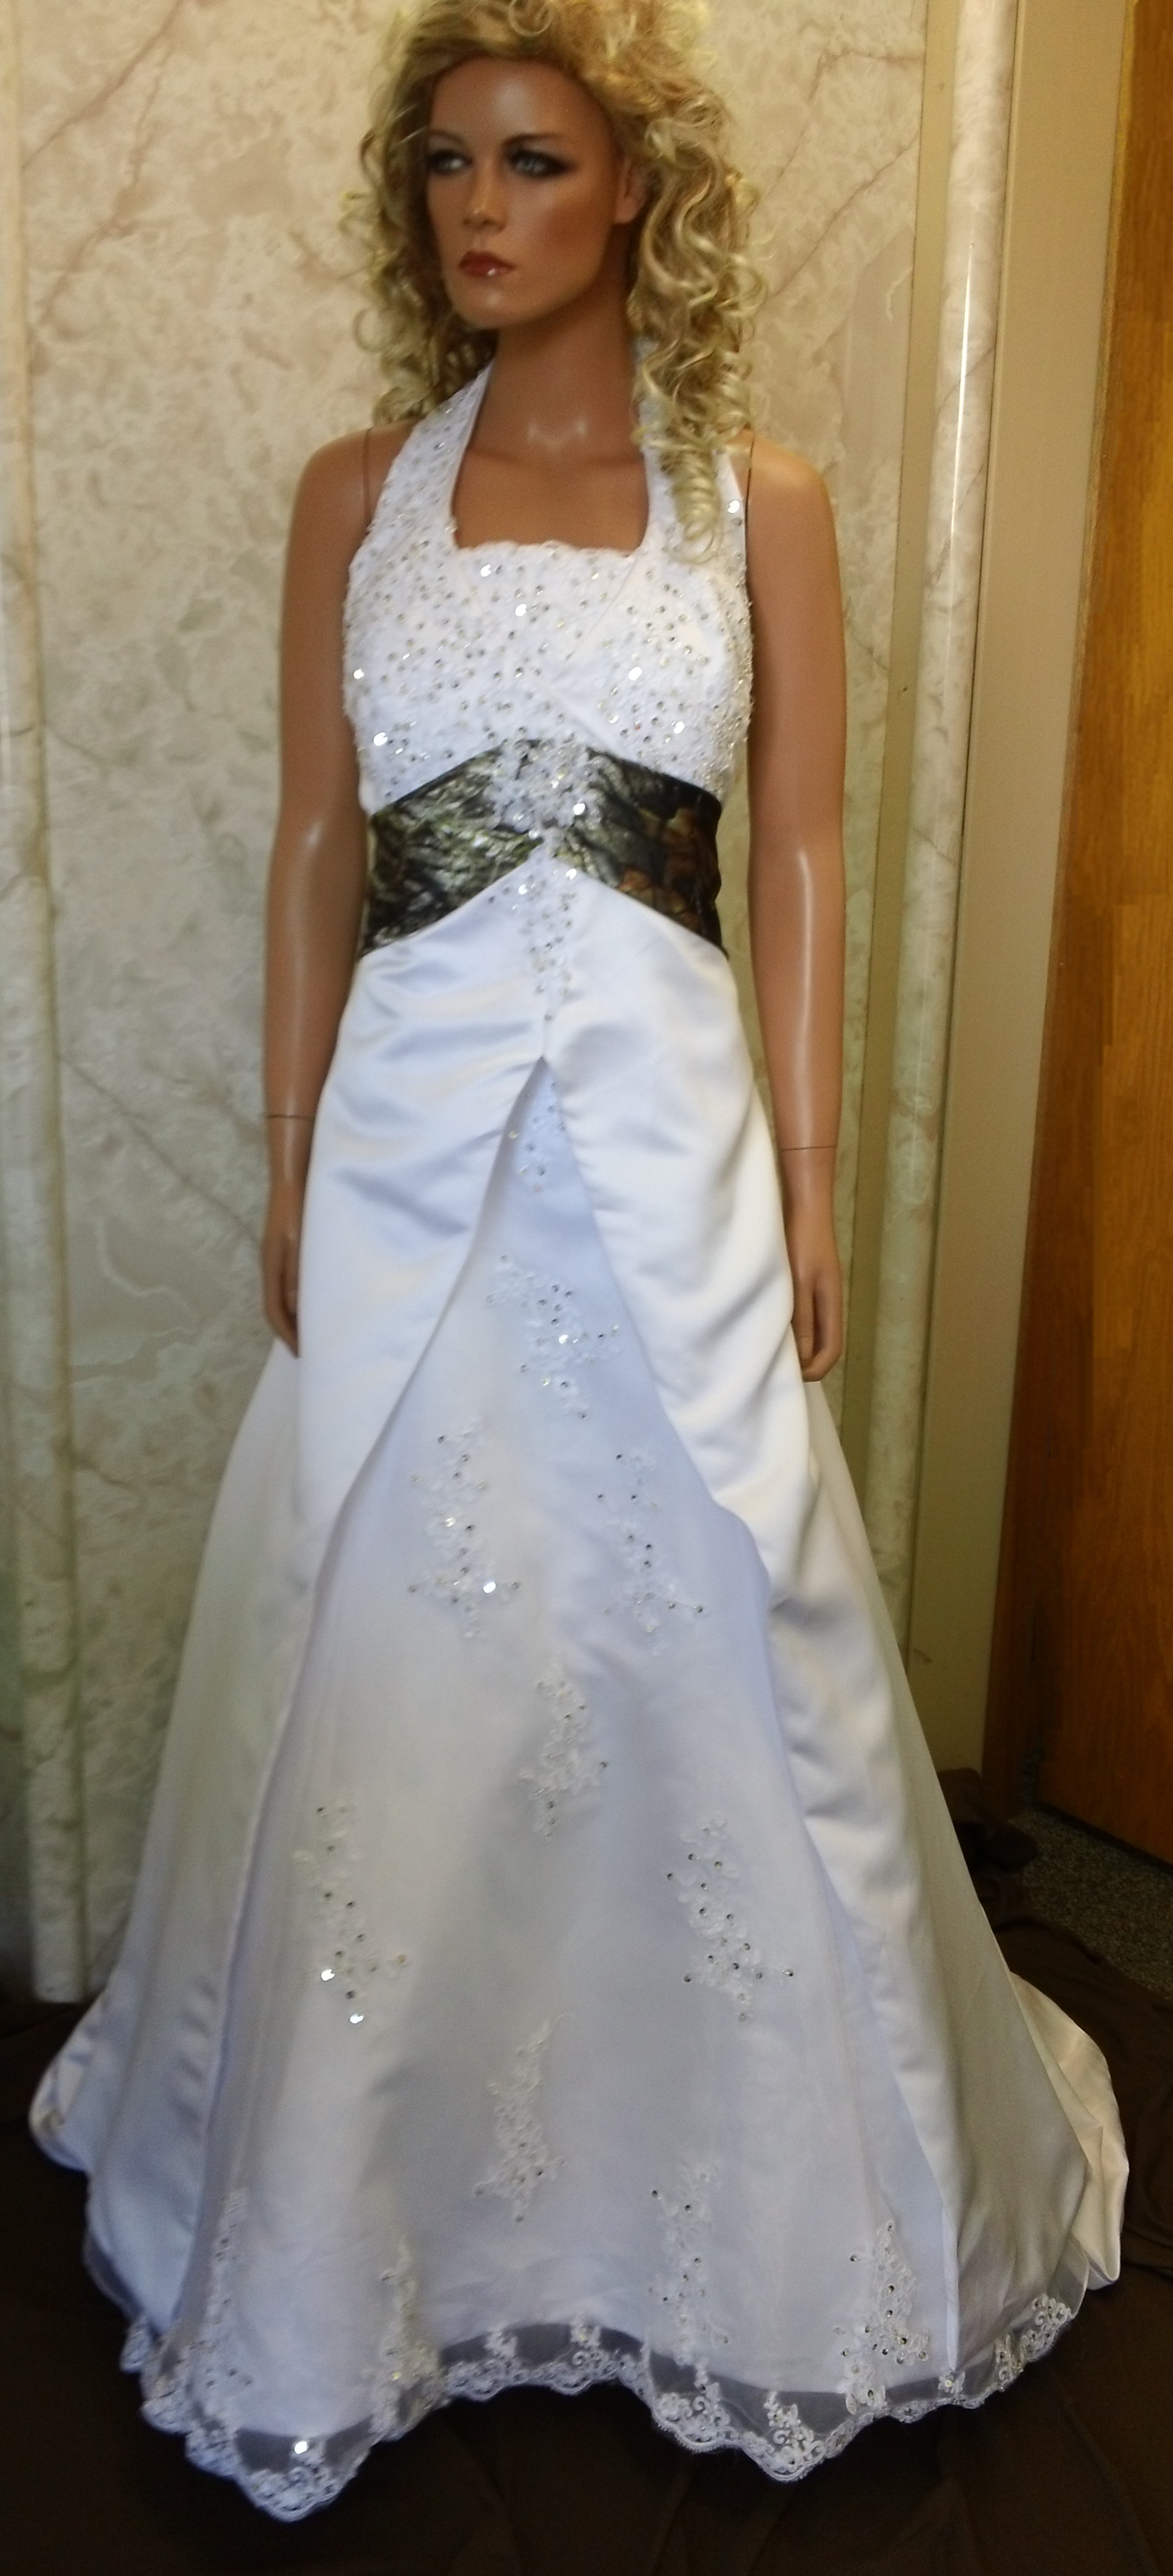 Empire waist halter wedding dresses.